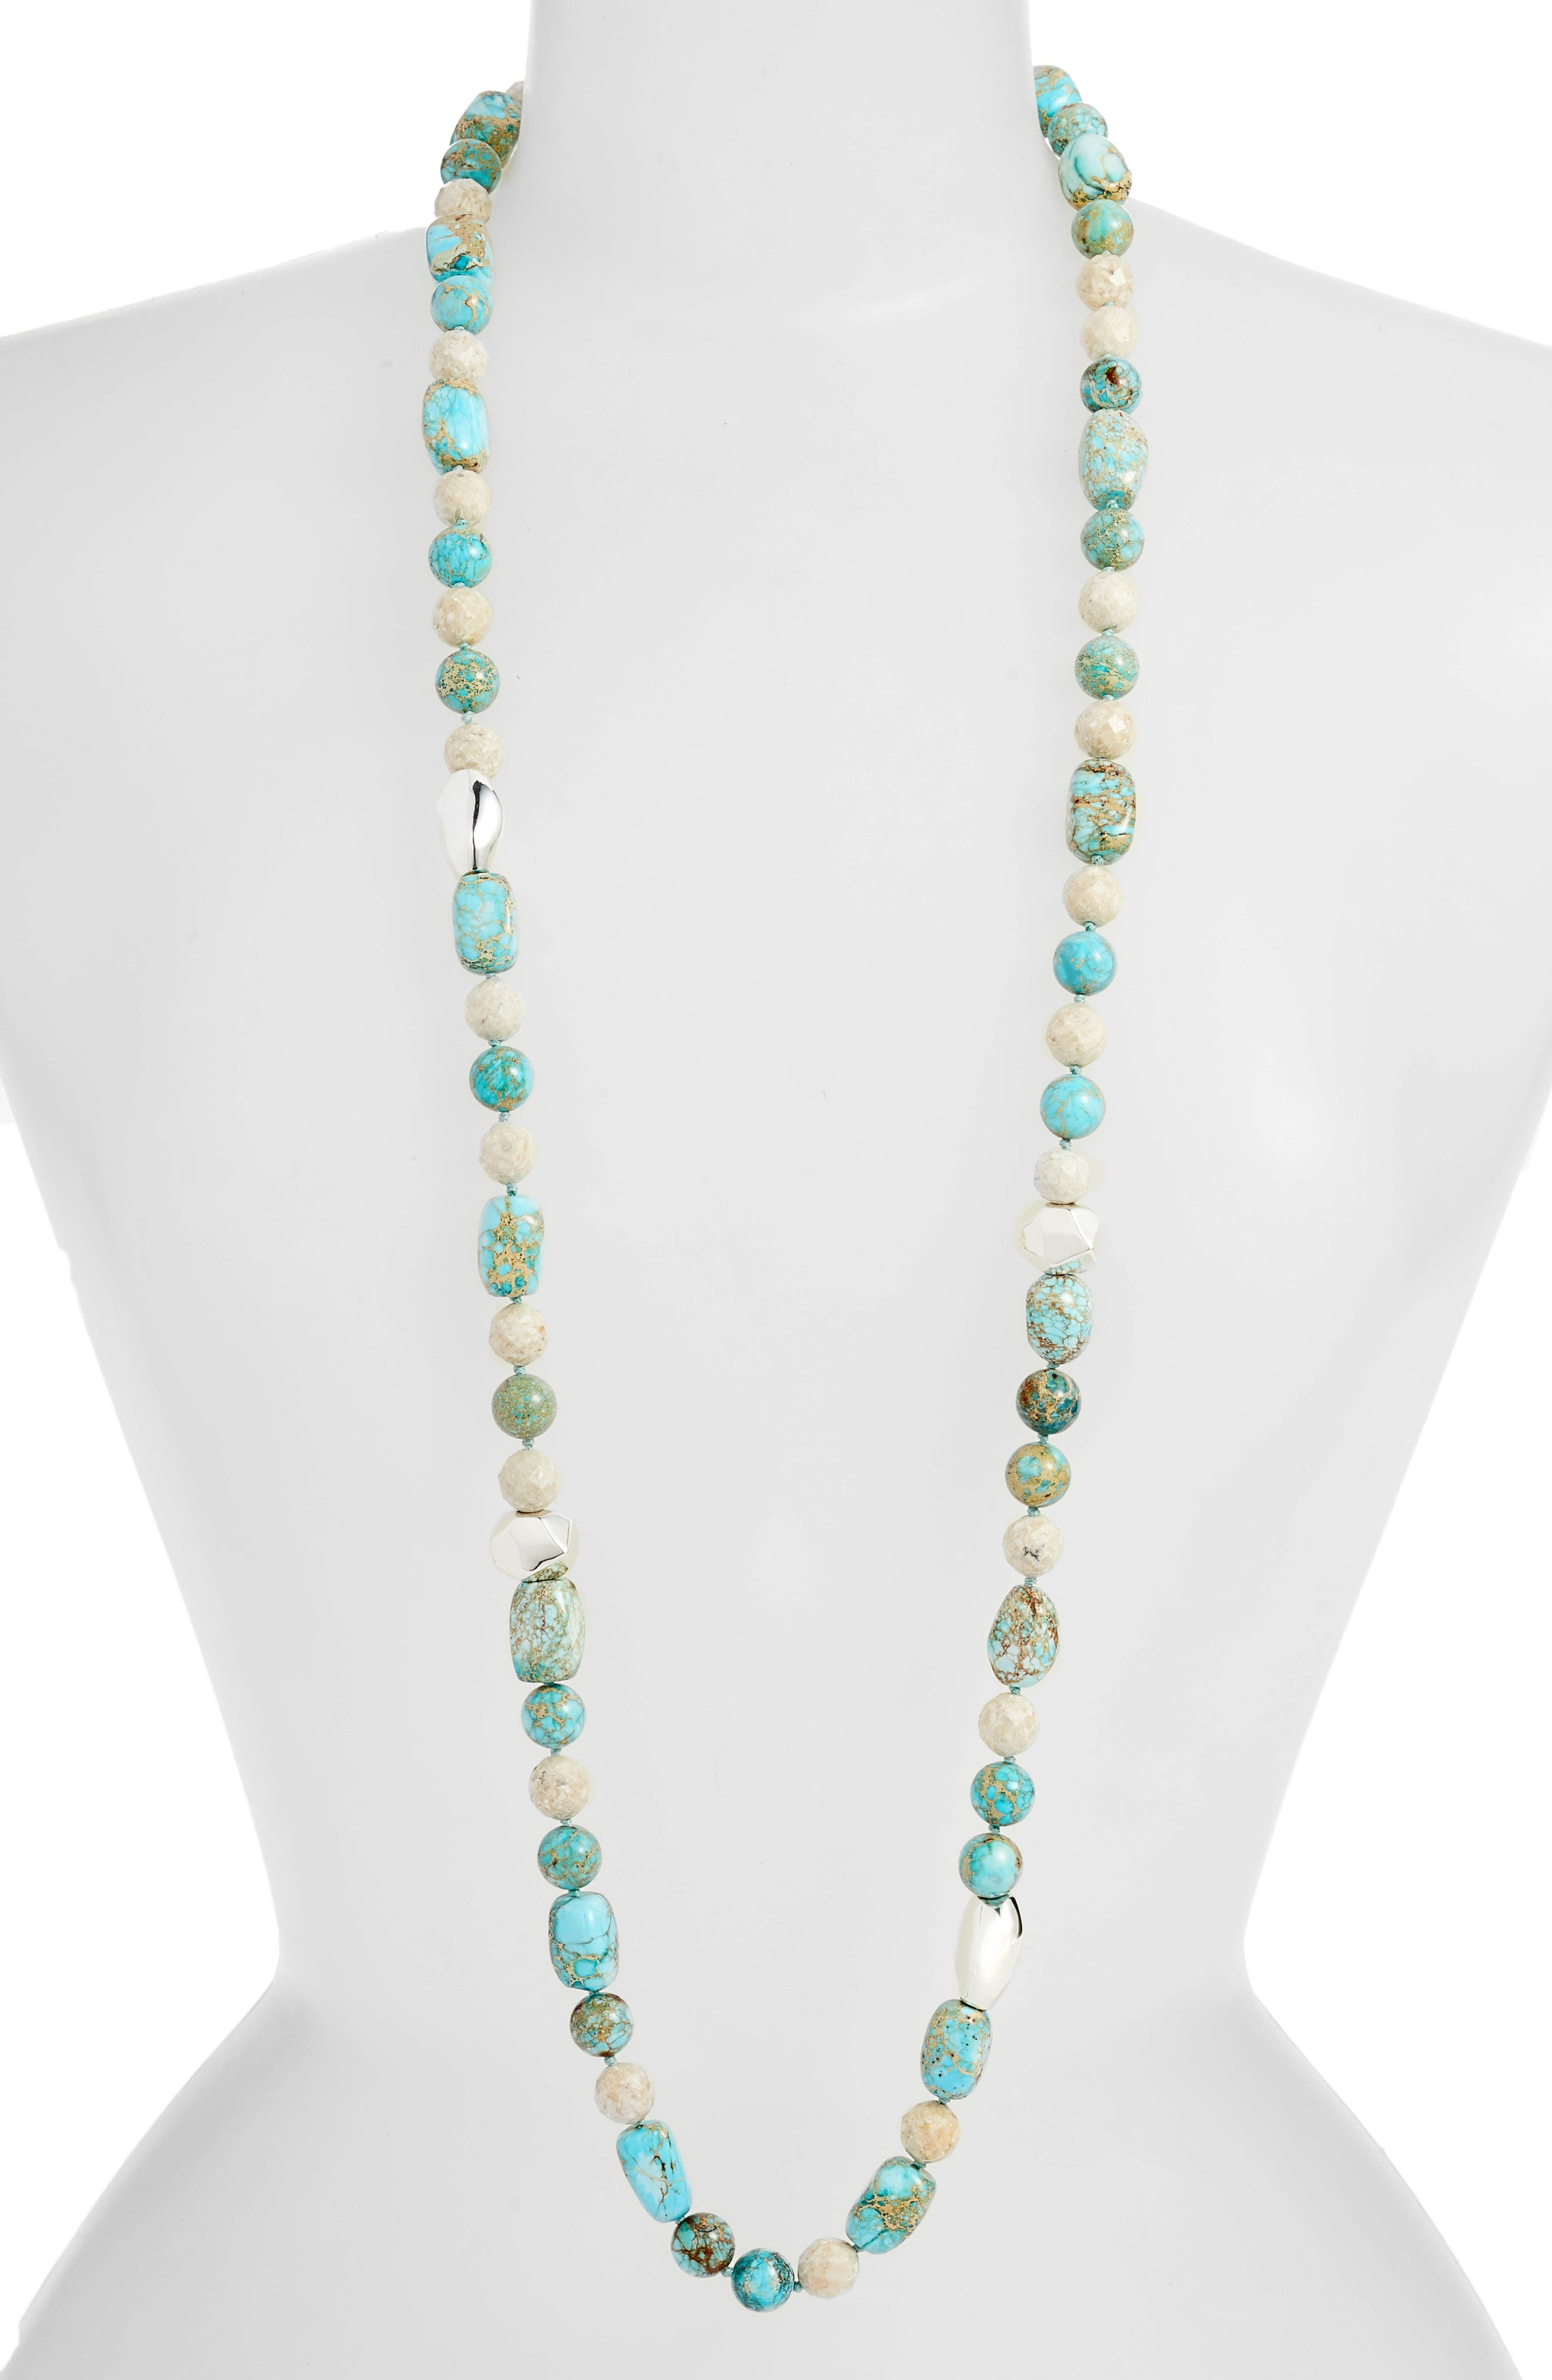 Silver Accent Jasper Beaded Necklace,                             Main thumbnail 1, color,                             BLUE/ BEIGE/ SILVER